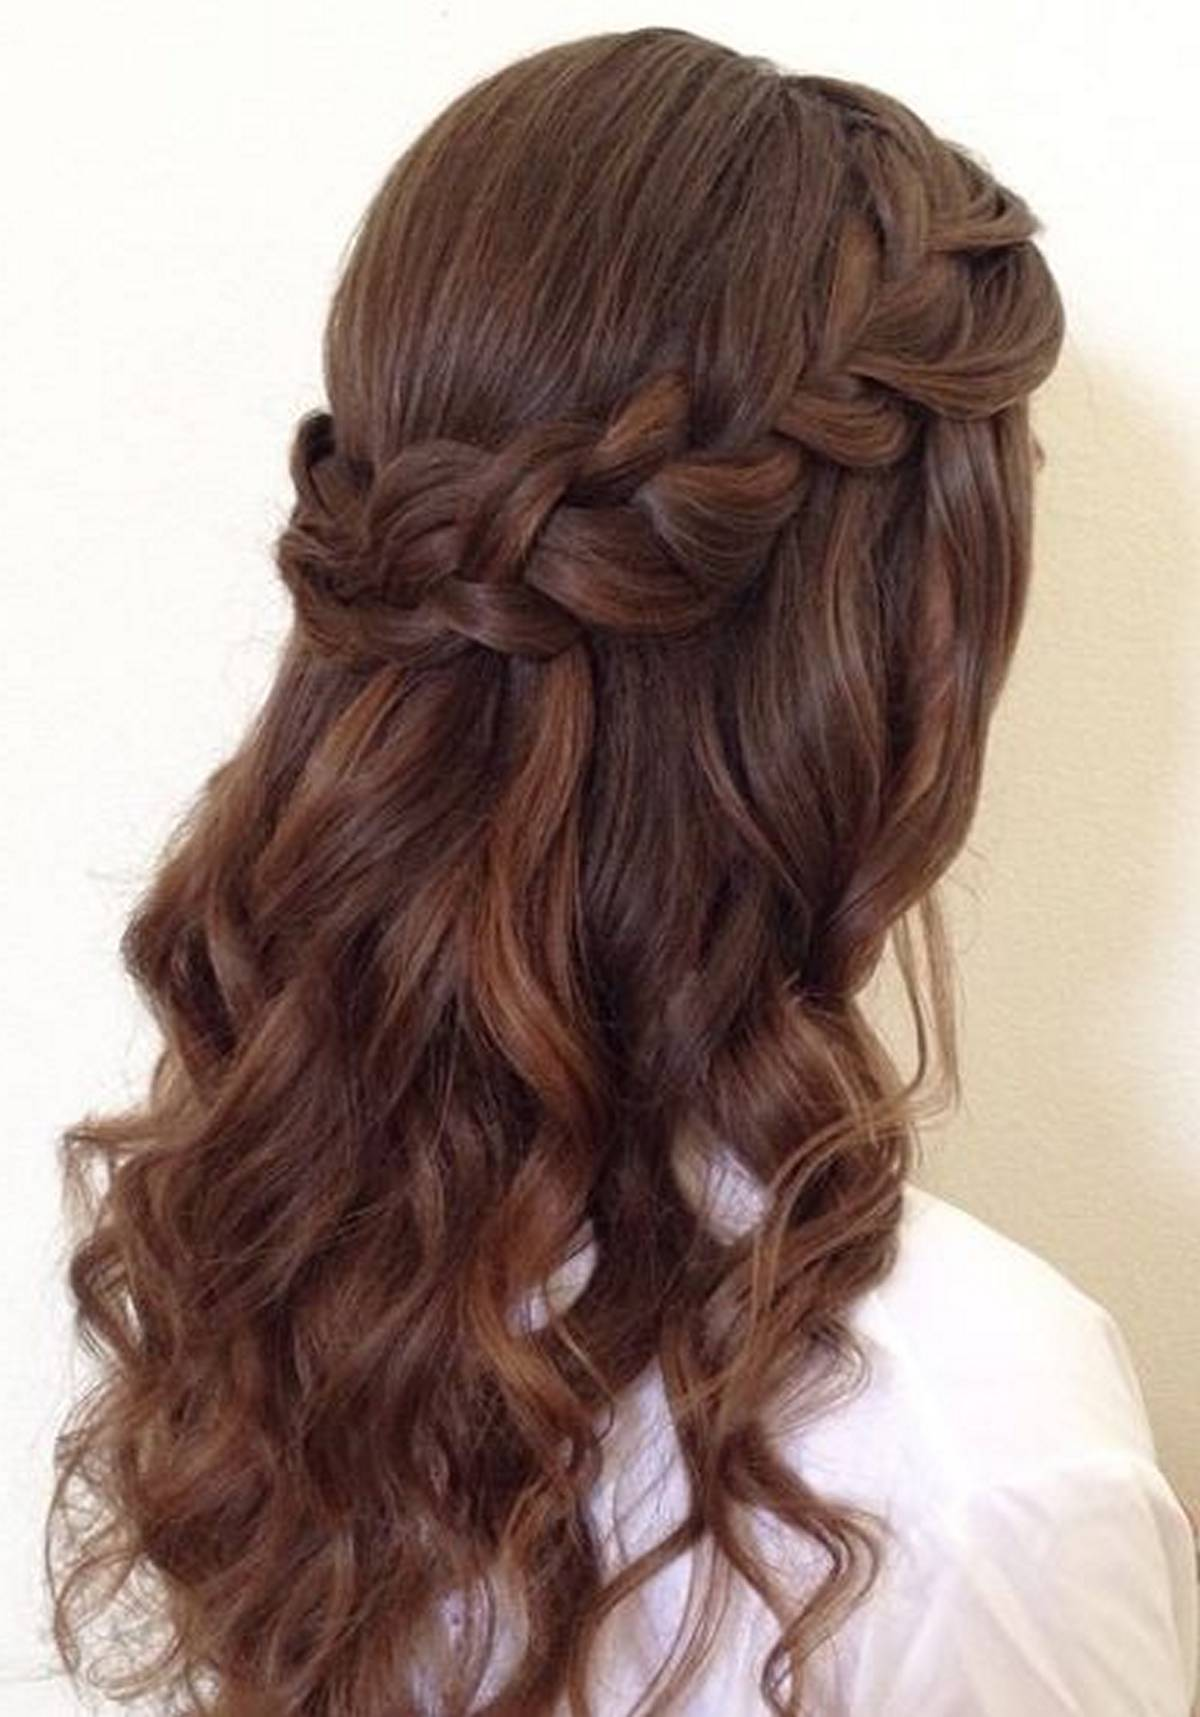 Hairstyles diy and tutorial for all hair lengths 163 | fashion